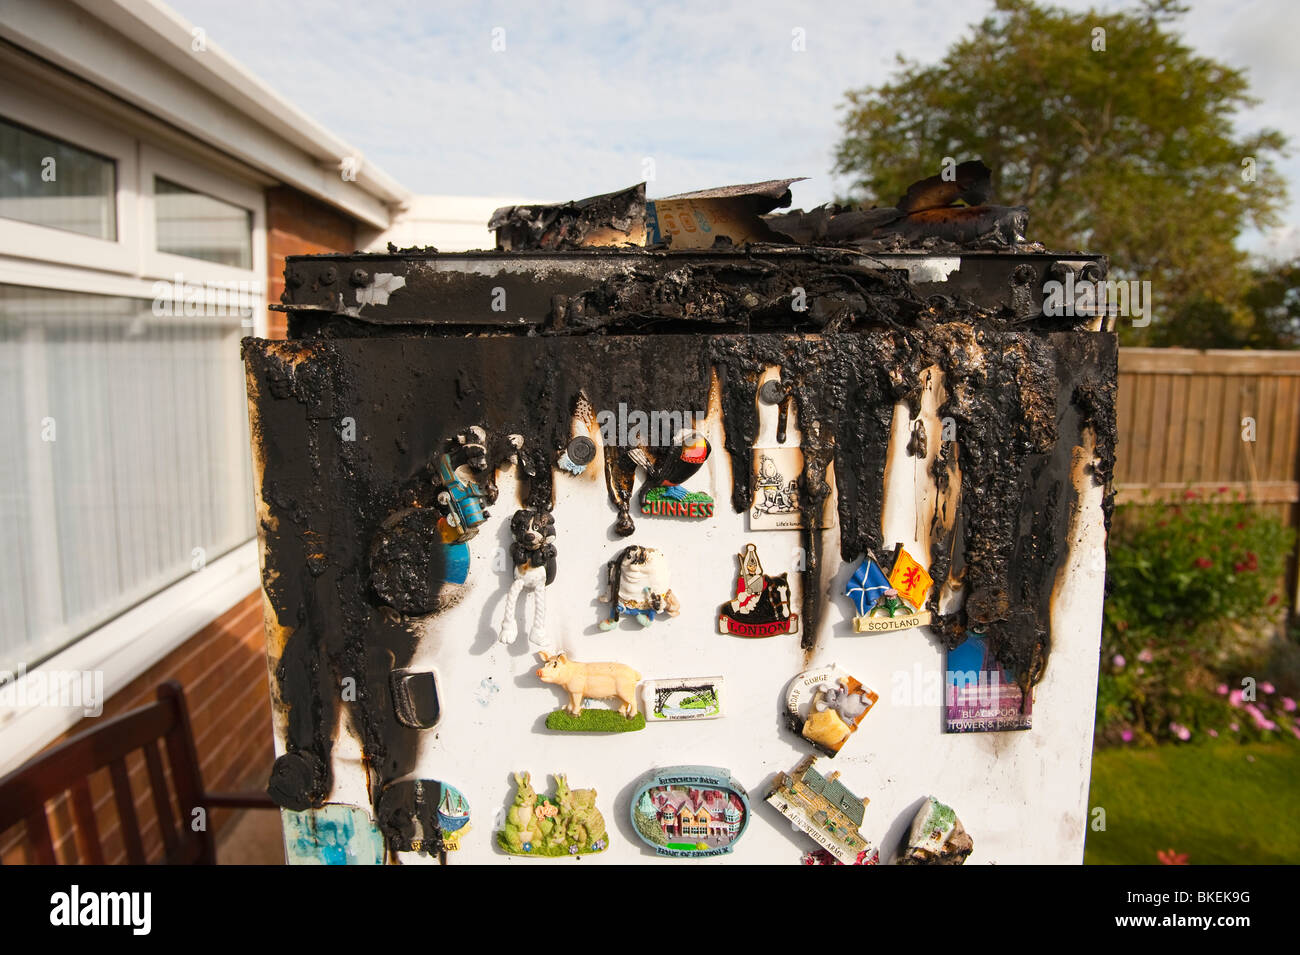 Domestic fridge freezer melted and burnt following fire caused by electrical control panel fault - Stock Image